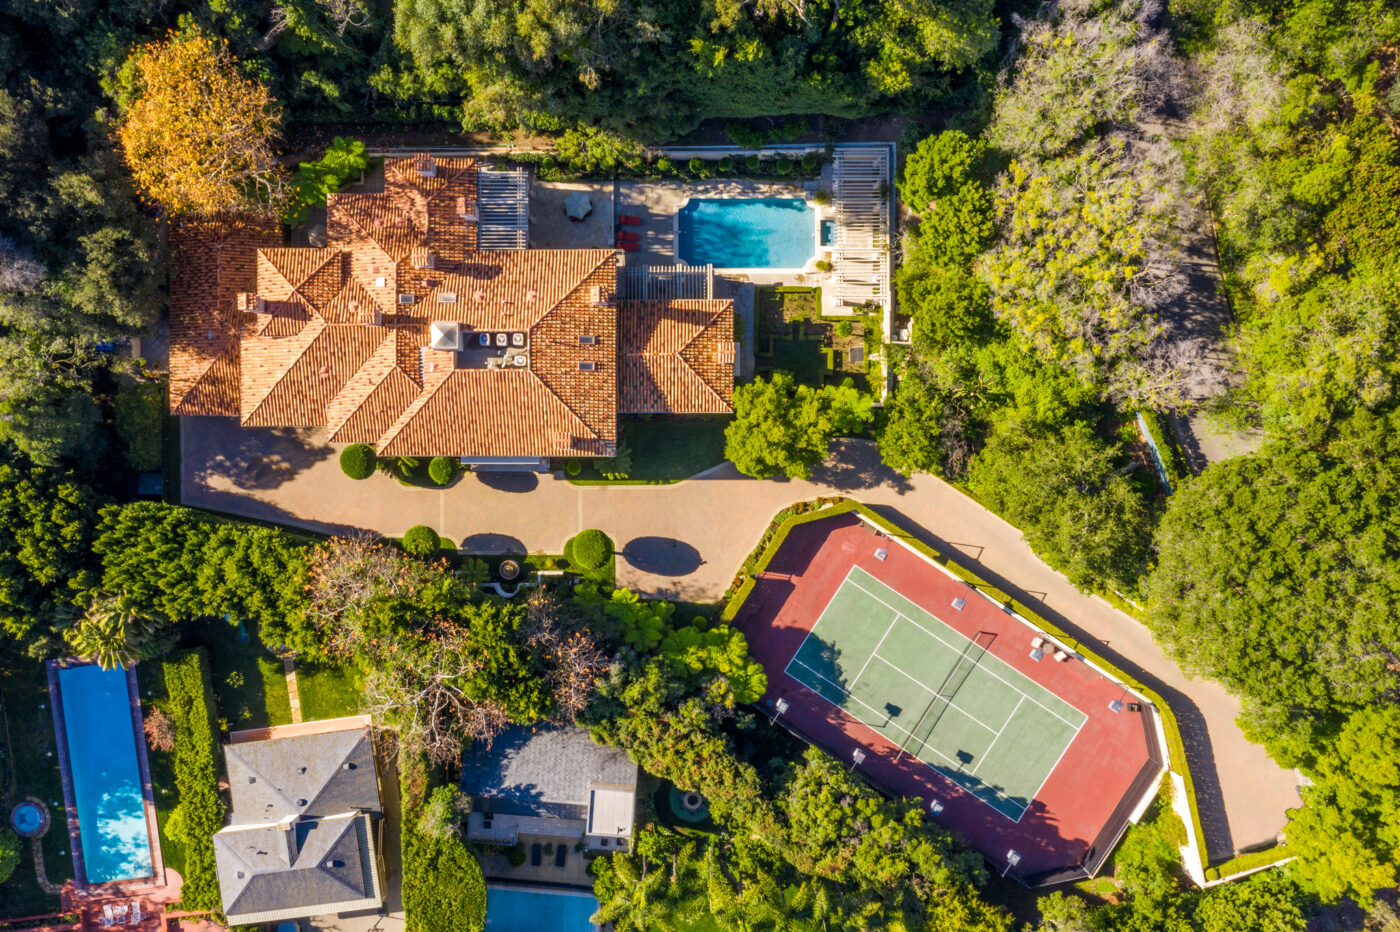 Chrysler legend Lee Iacocca's Bel Air home hits the market for $26M